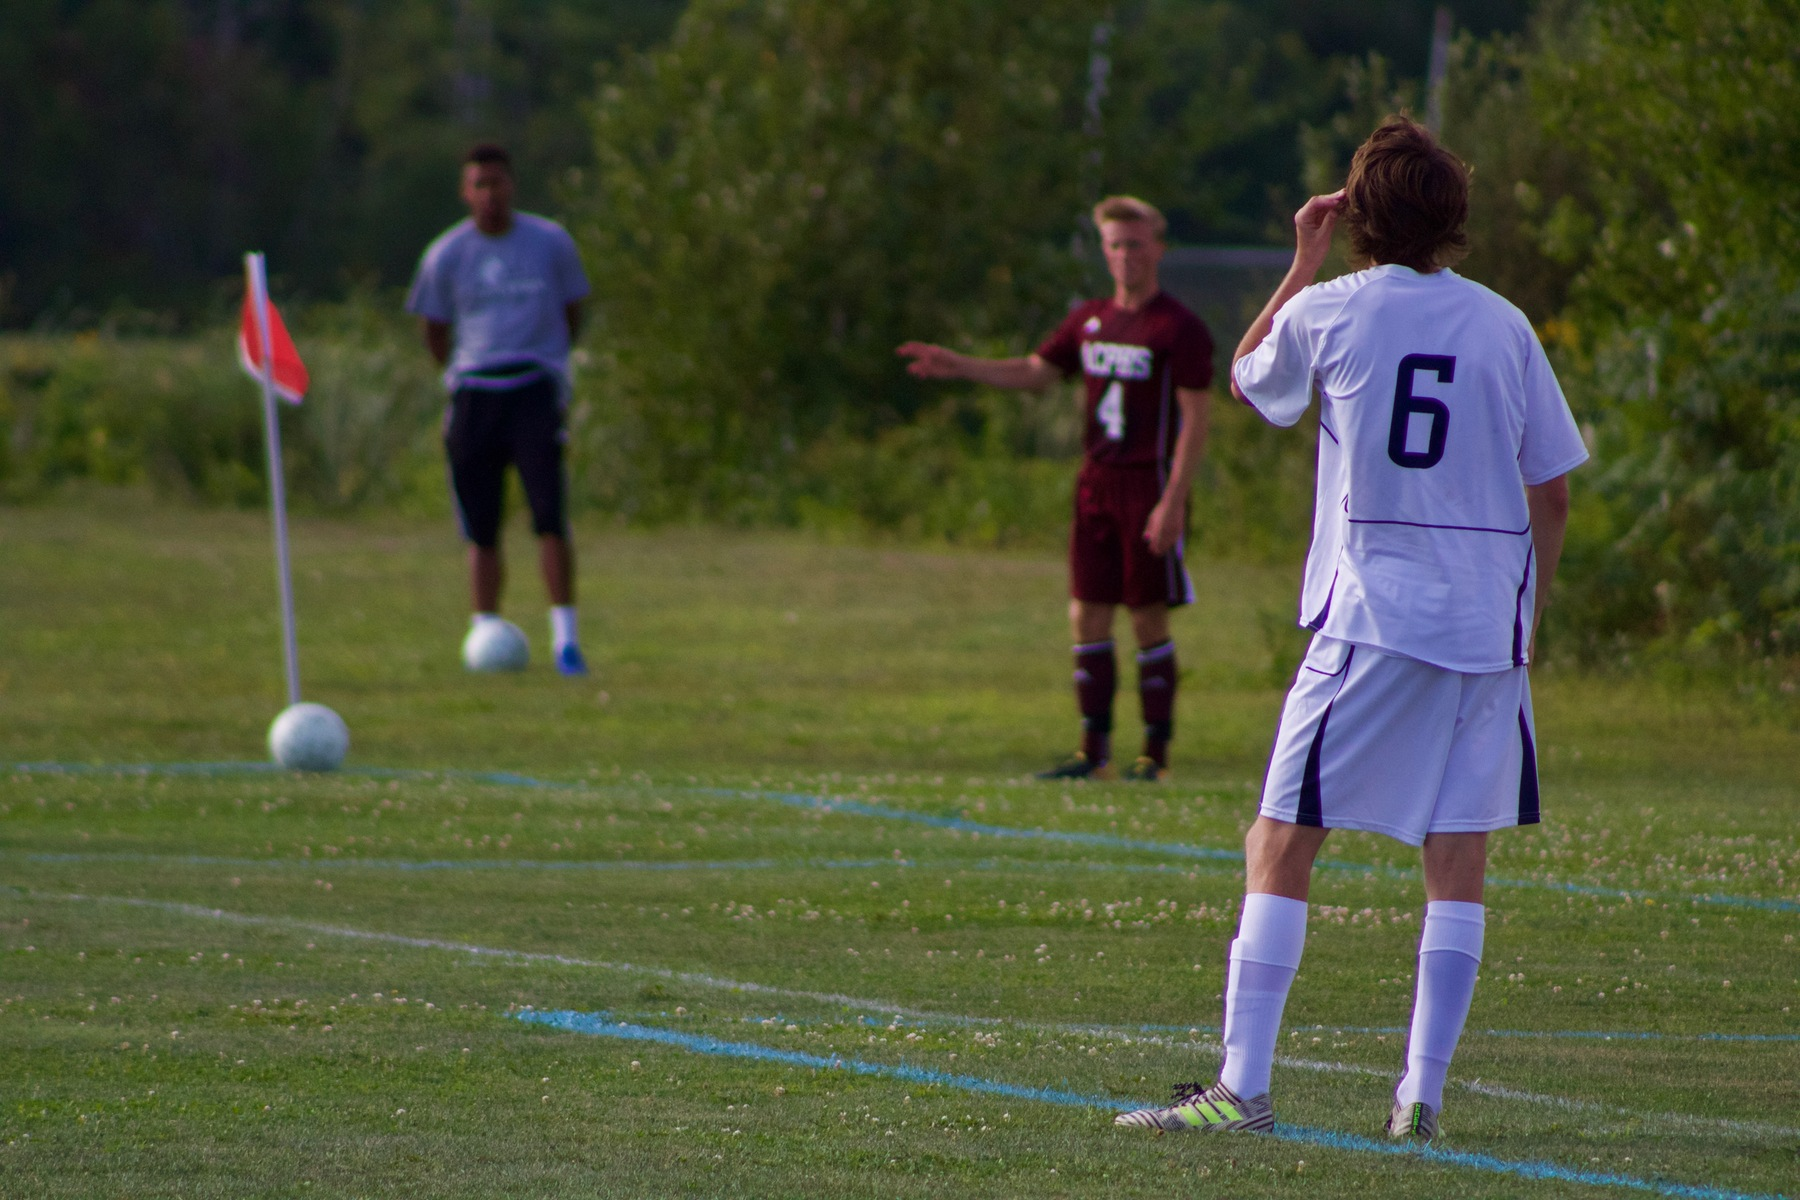 Men's Soccer Keeps Pace With Third YSCC Victory